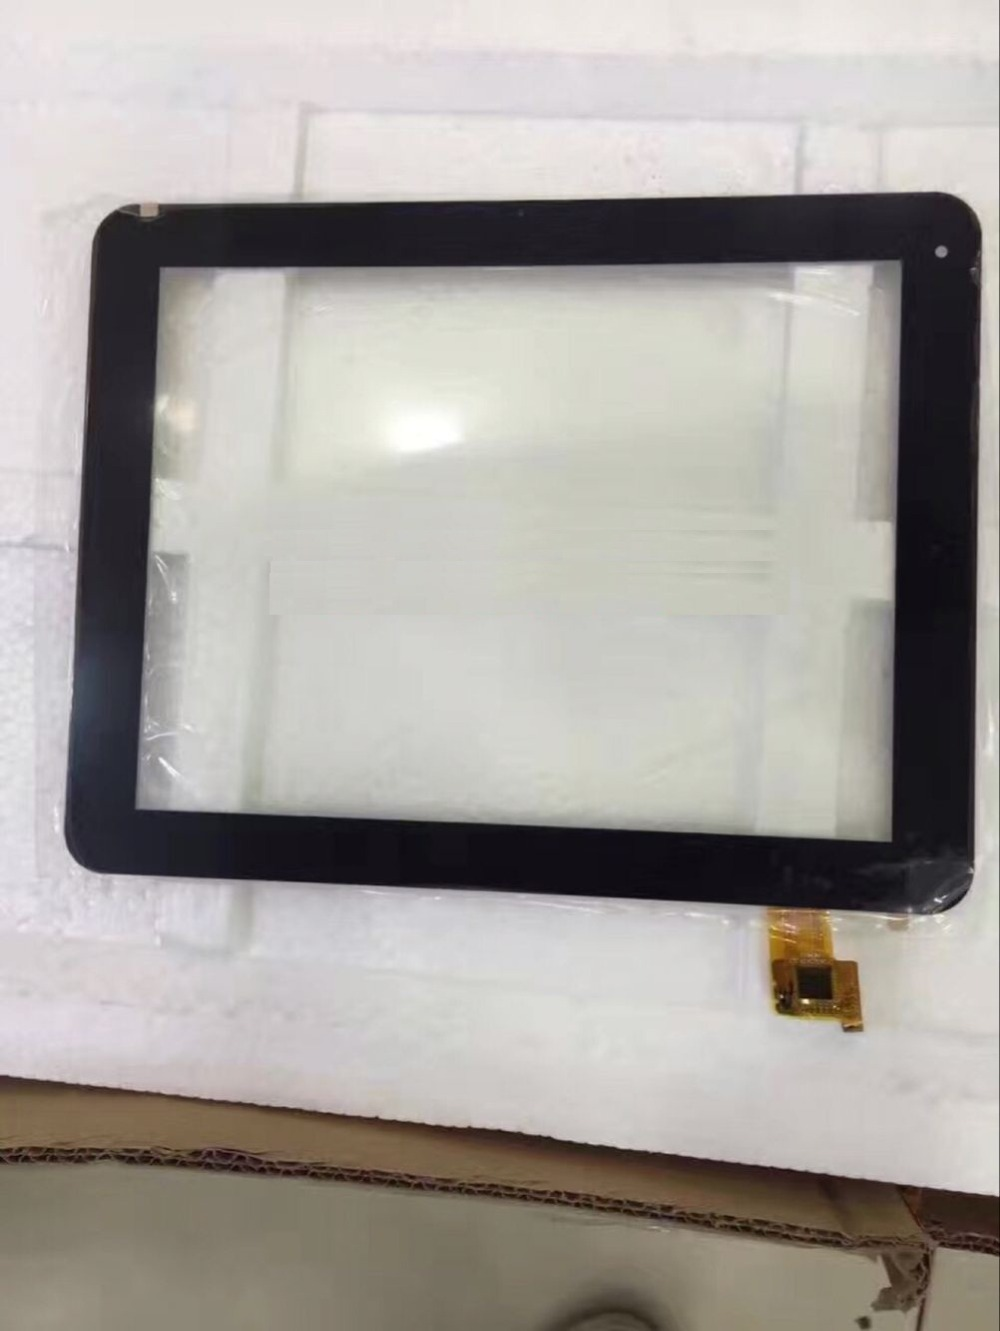 9.7 touch panel For Bliss Pad R9733 Tablet touch screen panel Digitizer Glass Sensor Replacement Free Shipping 7 for dexp ursus s170 tablet touch screen digitizer glass sensor panel replacement free shipping black w